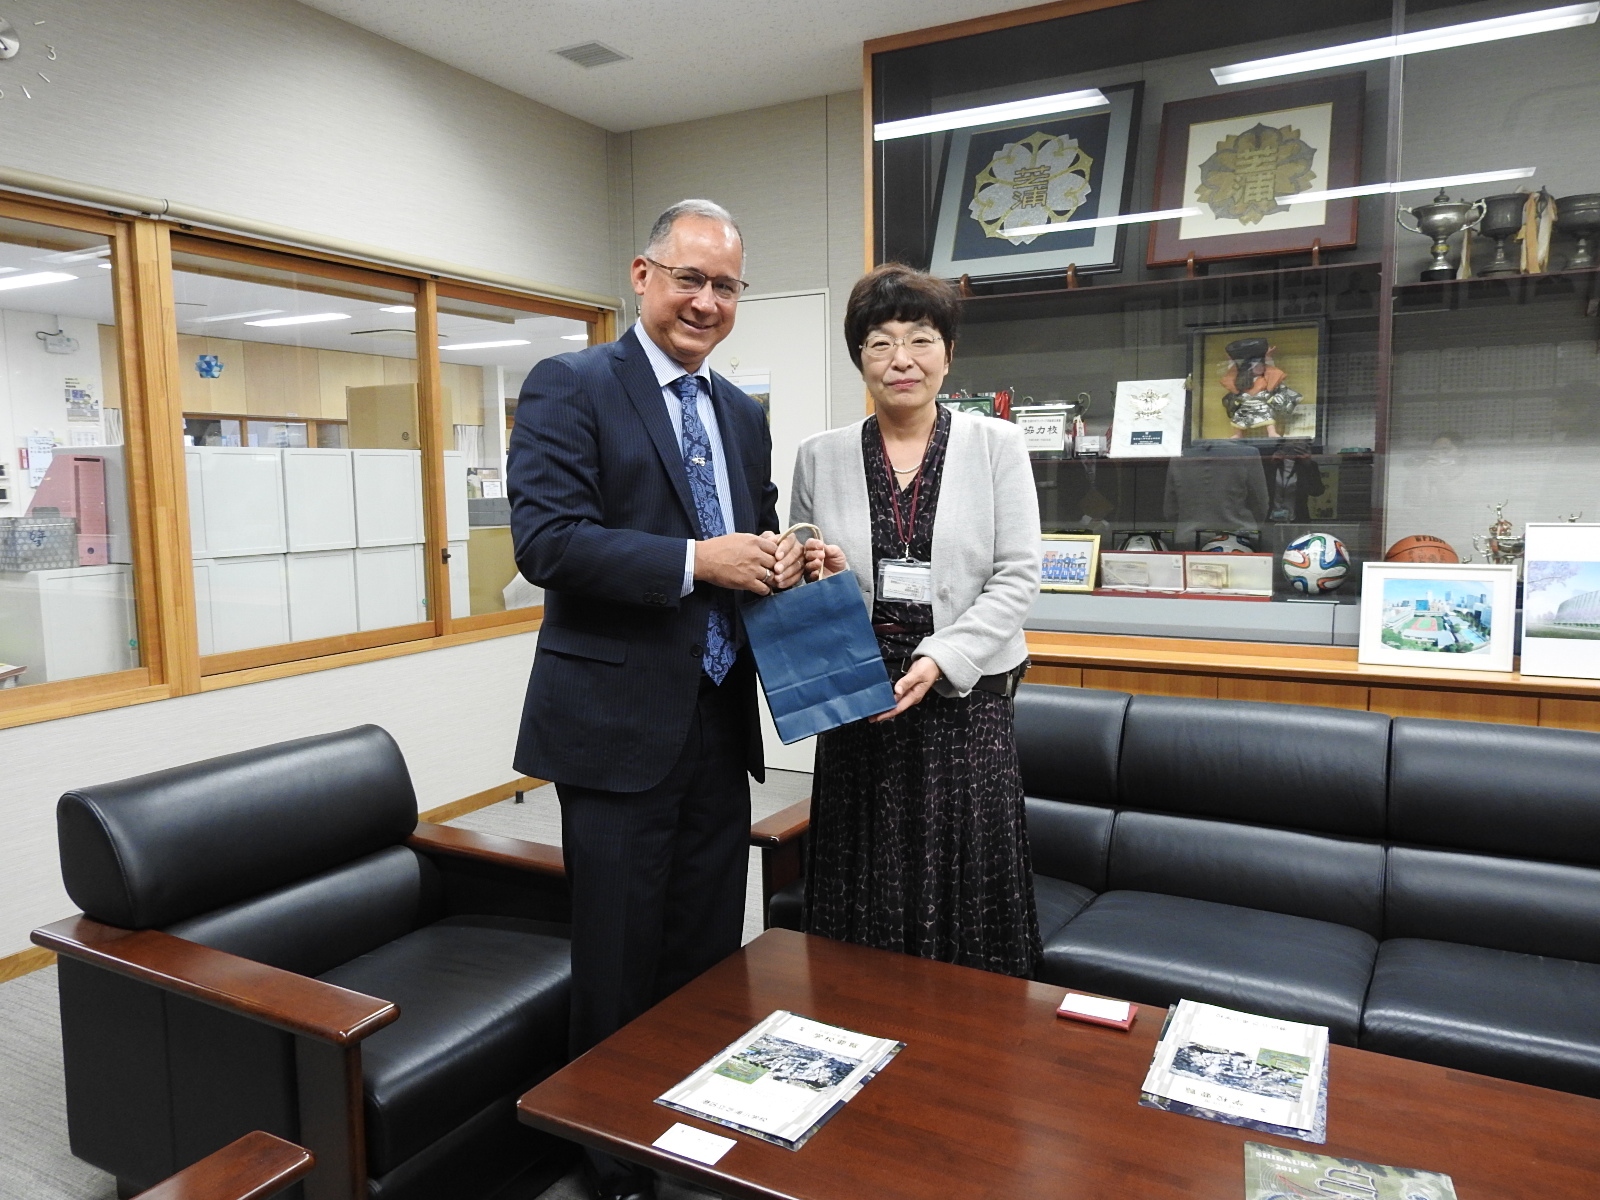 H.E. Ritter N. Díaz, Ambassador of Panama in Japan, together with Ms. Akiko Mikami Deputy Principal of Shibaura Elementary School.